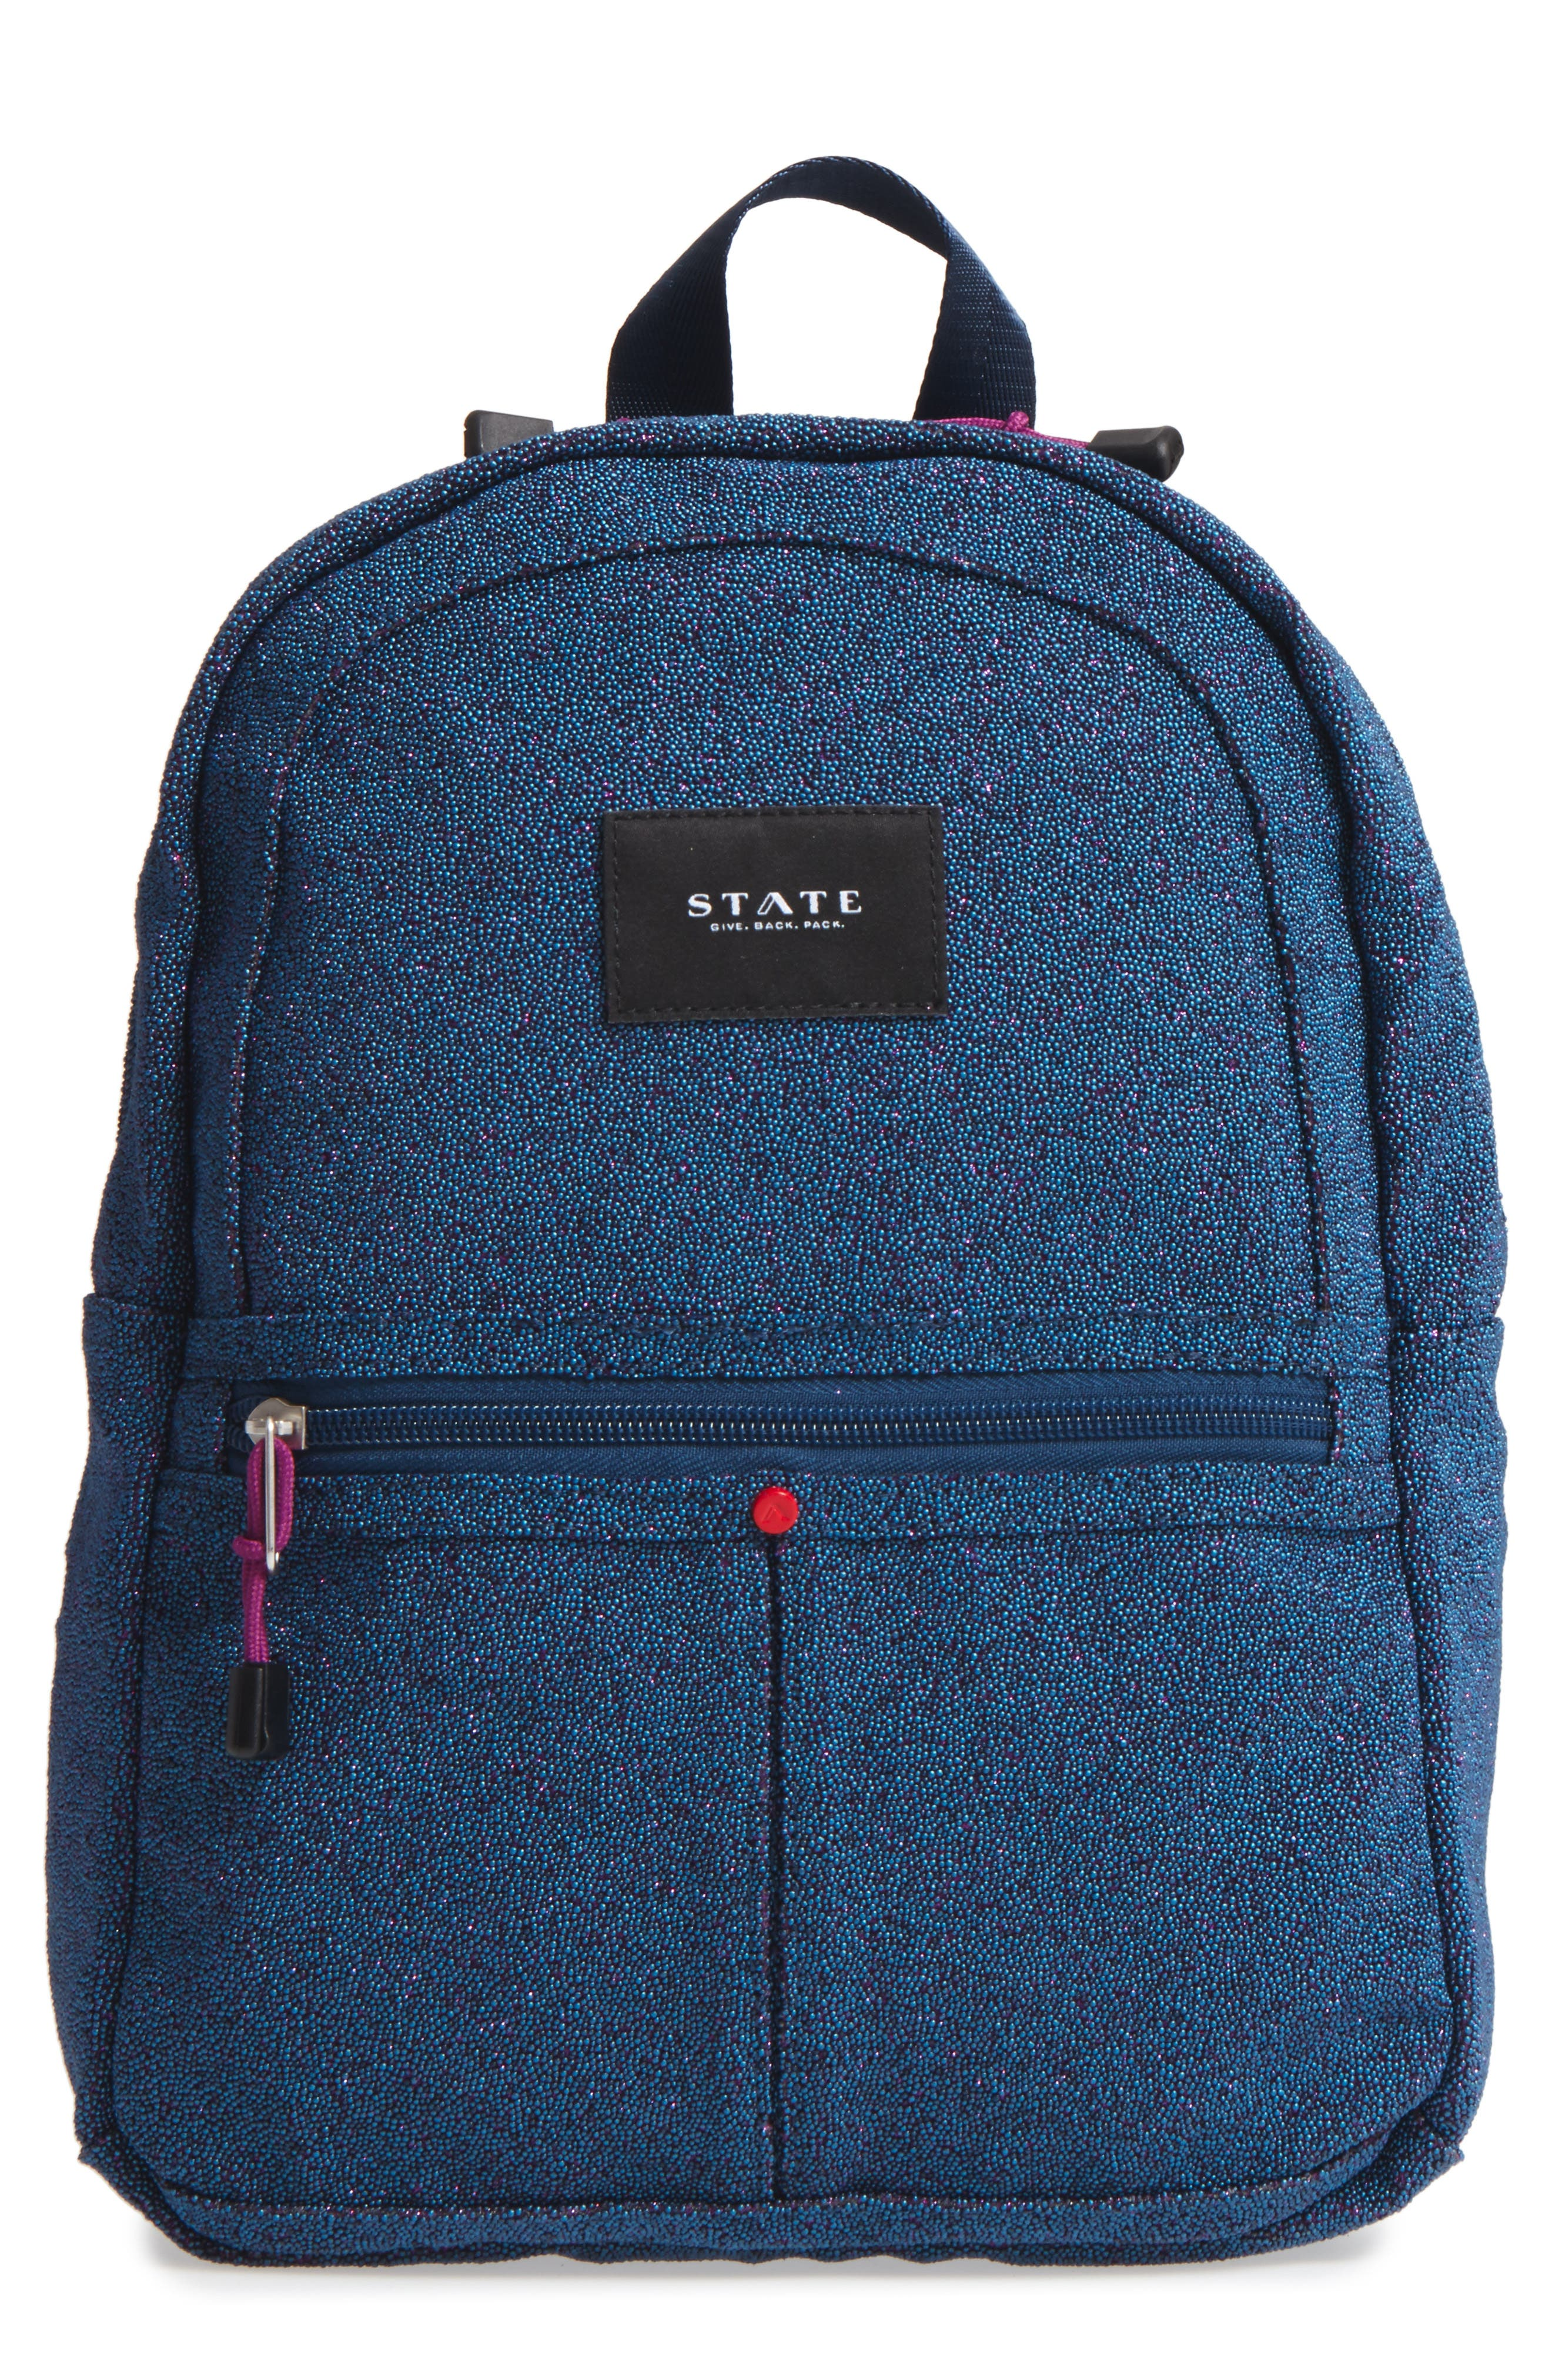 STATE BAGS Mini Kane Backpack